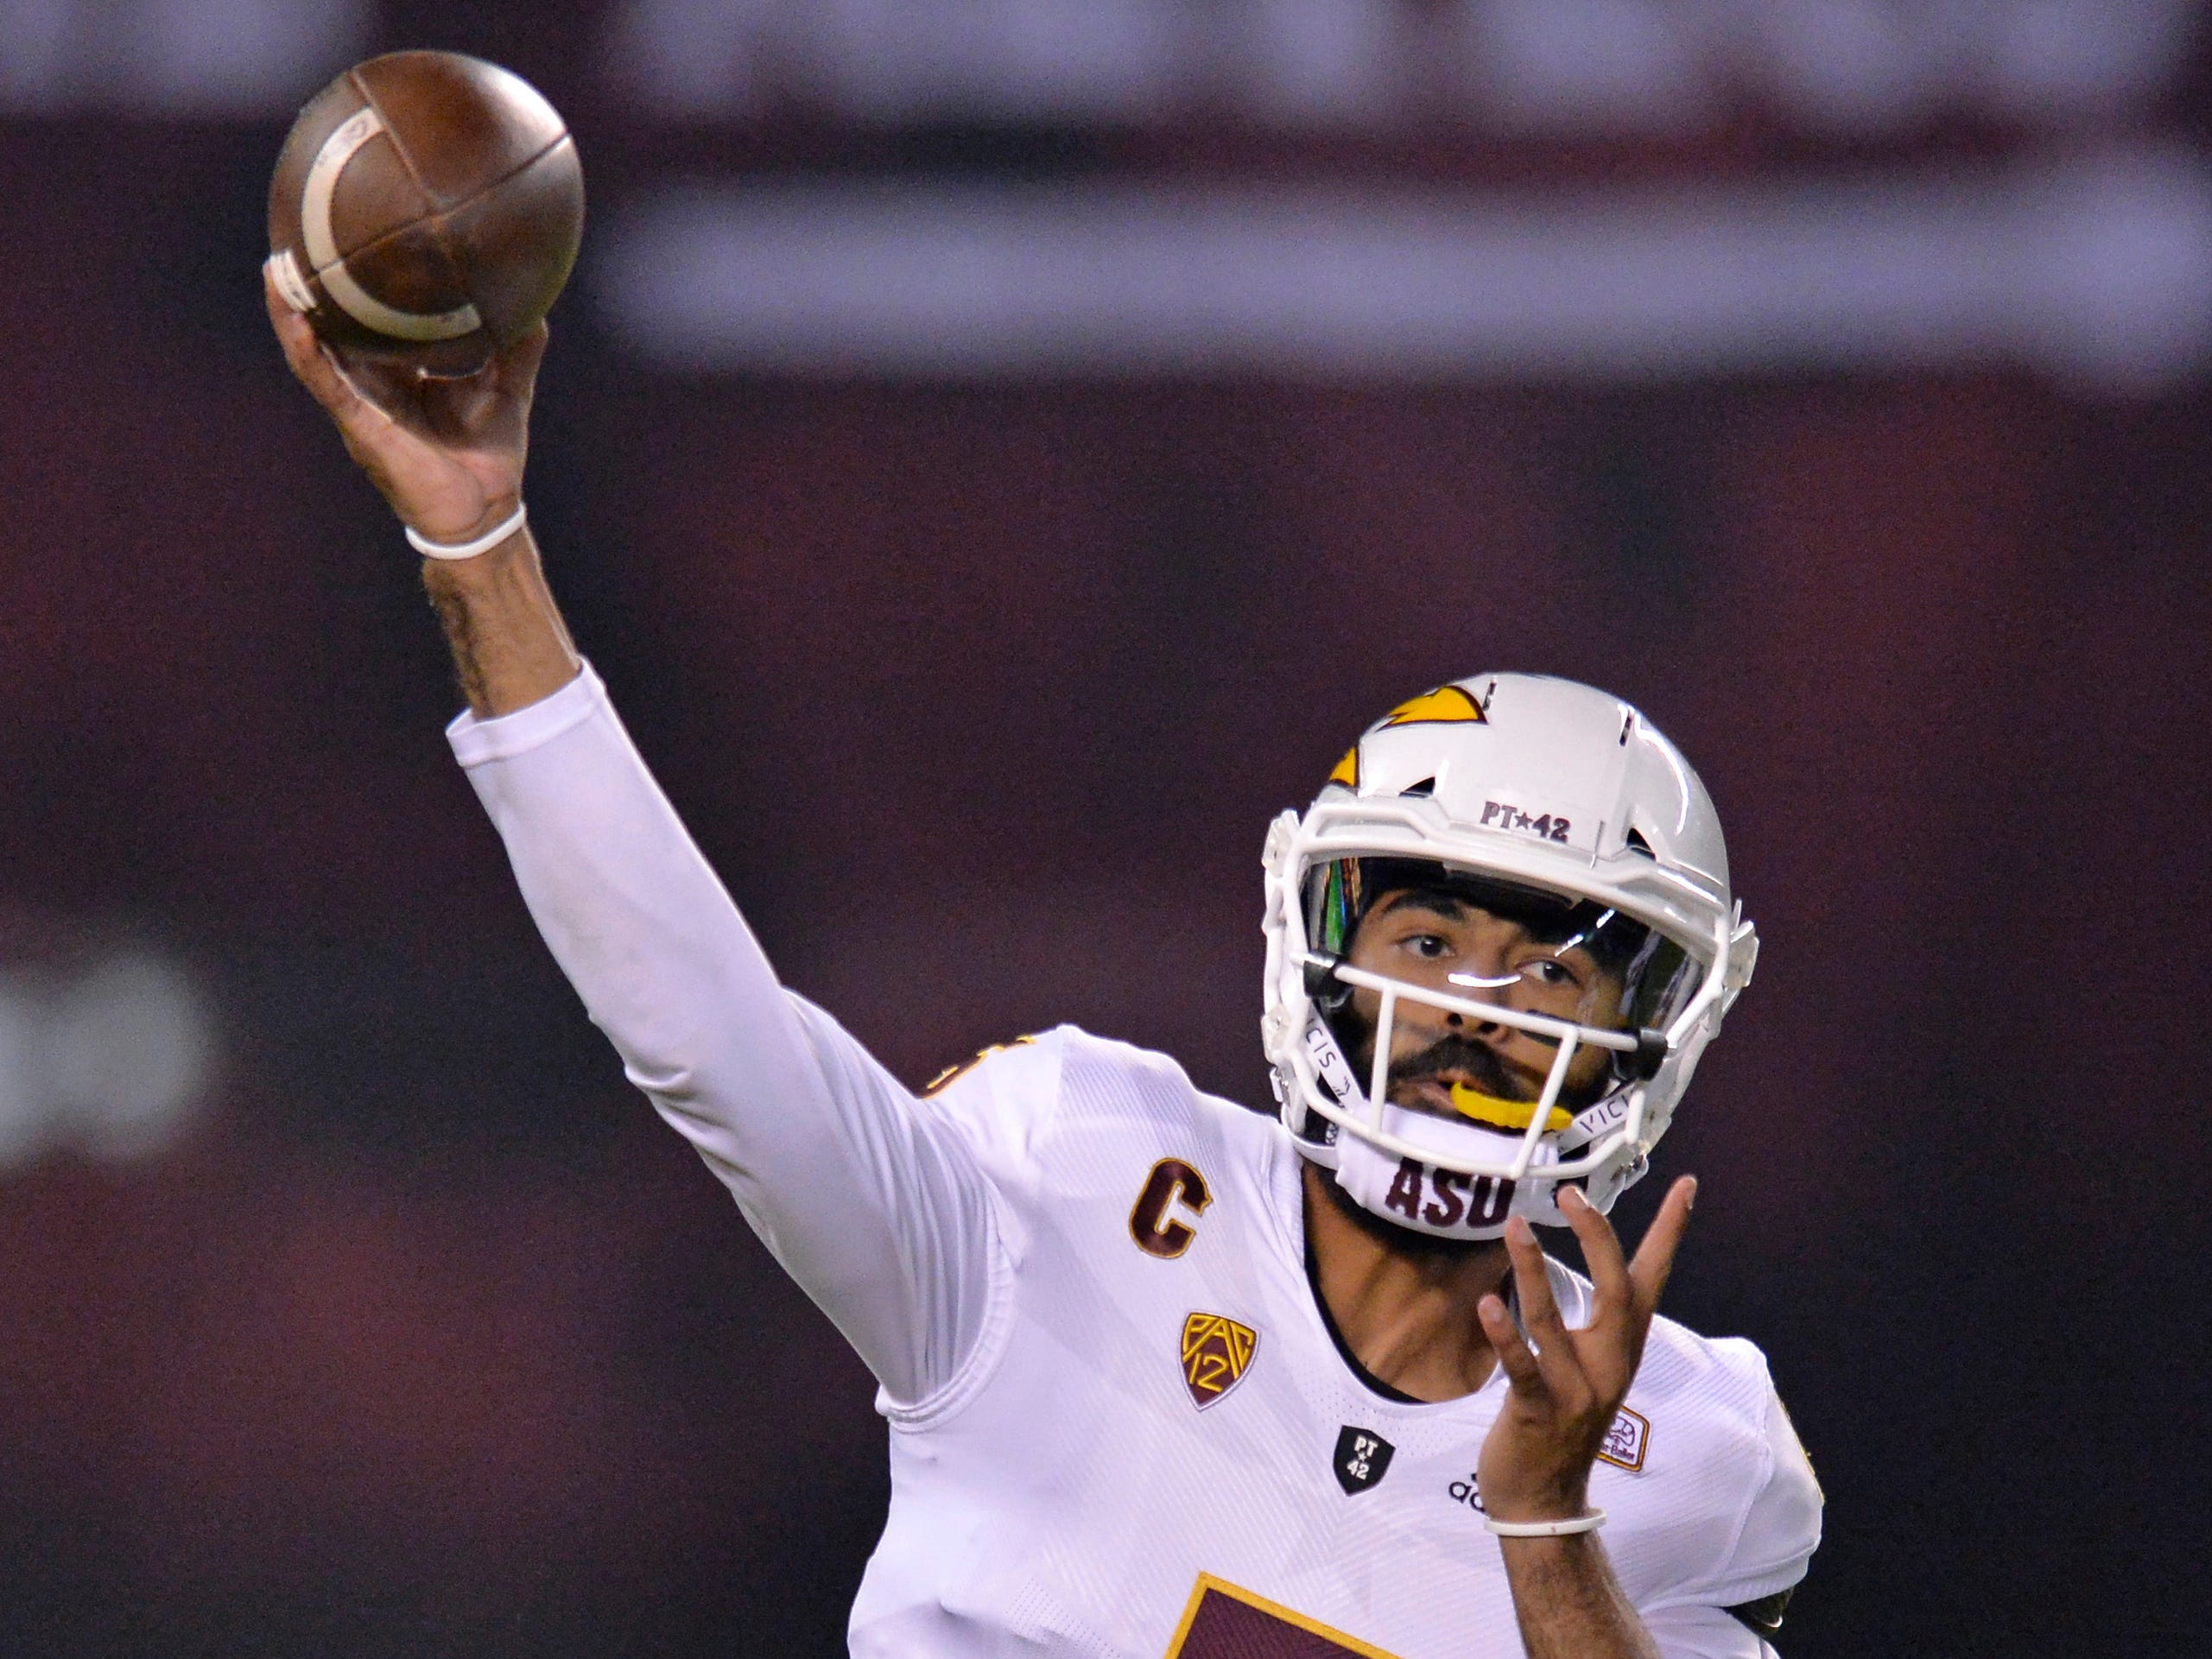 Sep 15, 2018; San Diego, CA, USA; Arizona State Sun Devils quarterback Manny Wilkins (5) passes during the first quarter against the San Diego State Aztecs at SDCCU Stadium. Mandatory Credit: Jake Roth-USA TODAY Sports